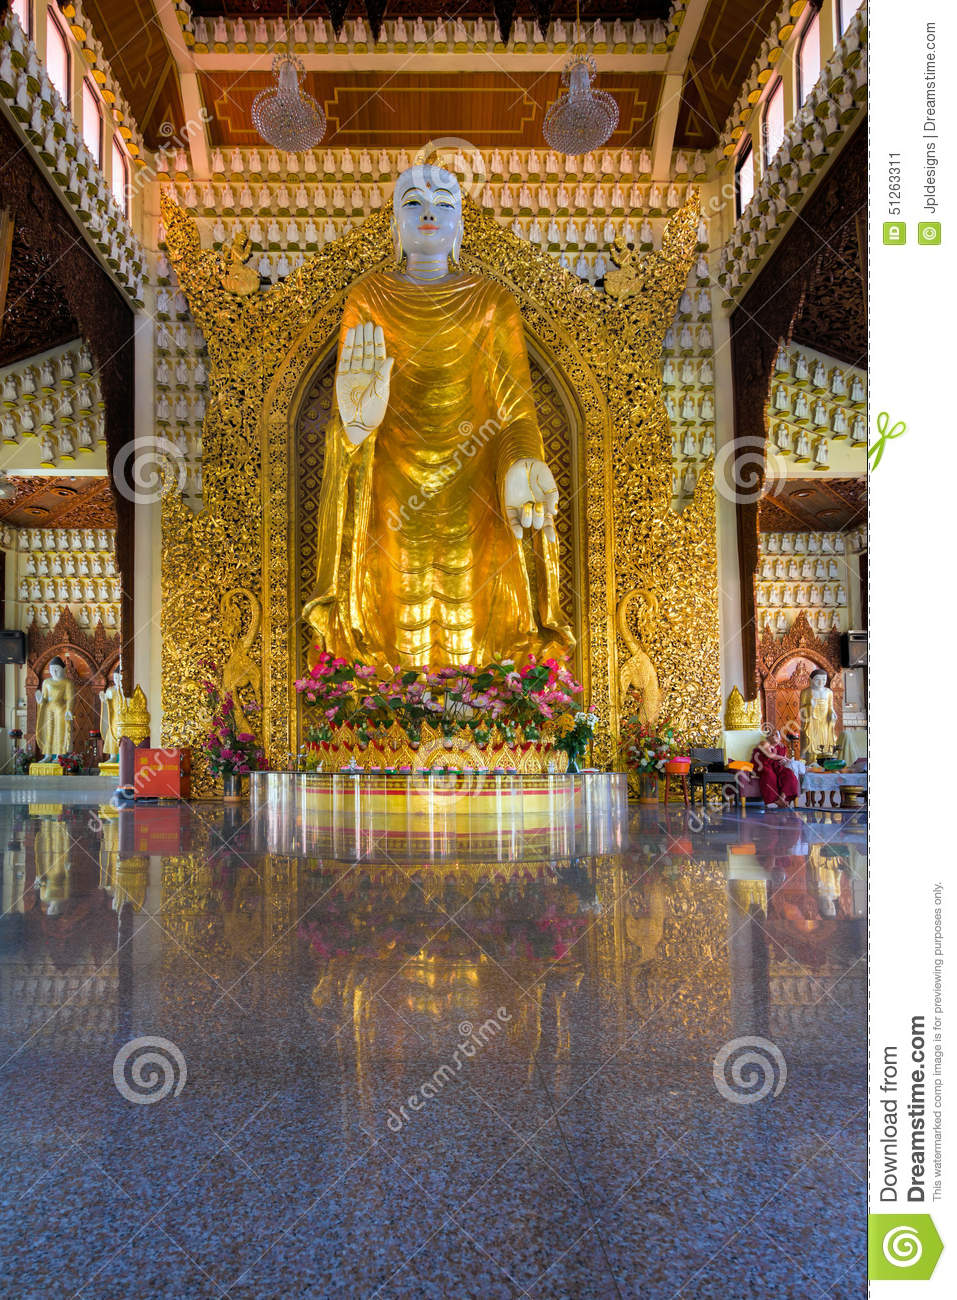 gro e gold buddha statue im dhammikarama birmane tempel redaktionelles foto. Black Bedroom Furniture Sets. Home Design Ideas